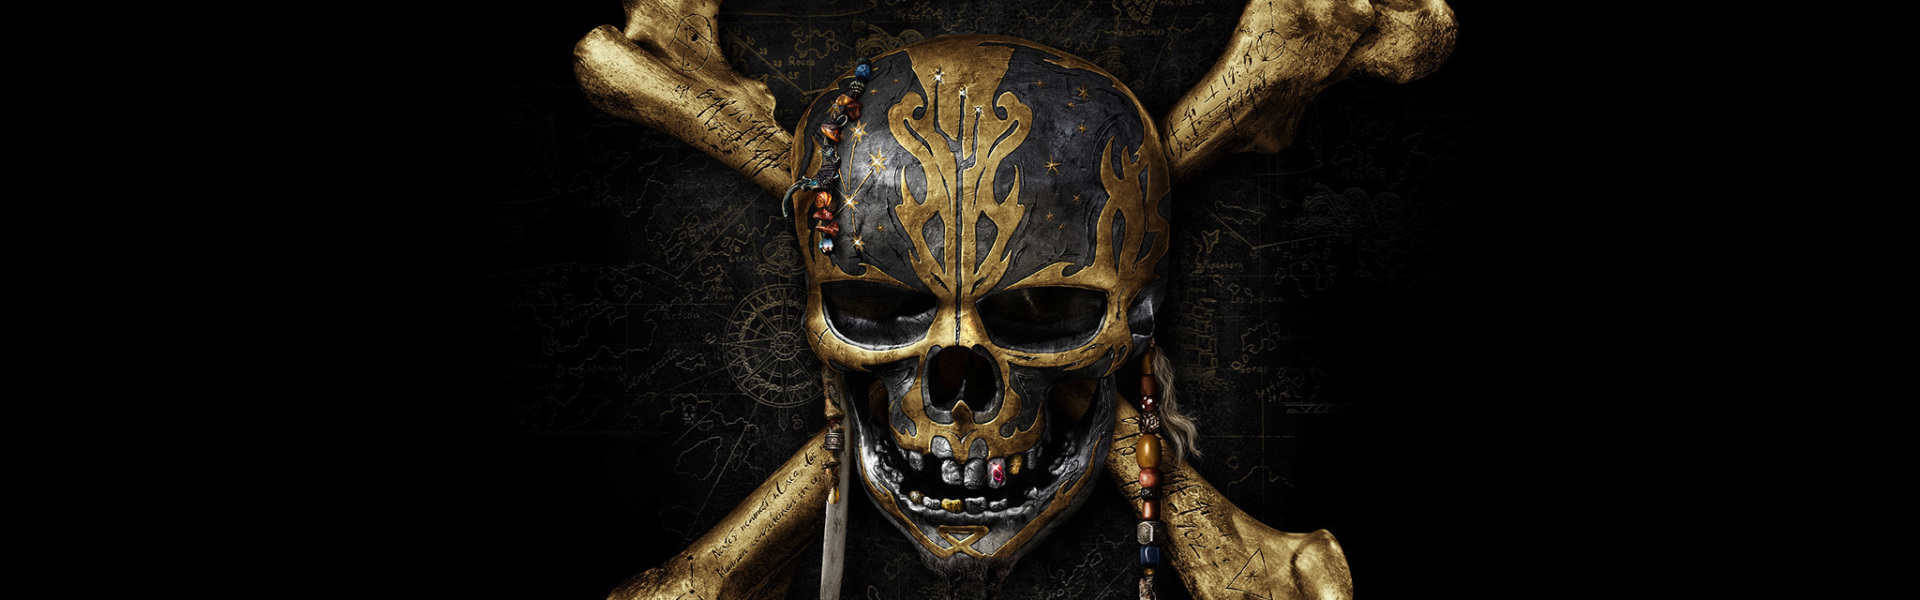 "Pirates of the Caribbean ""Dead Men Tell No Tales"" New Poster and Super bowl Spot"